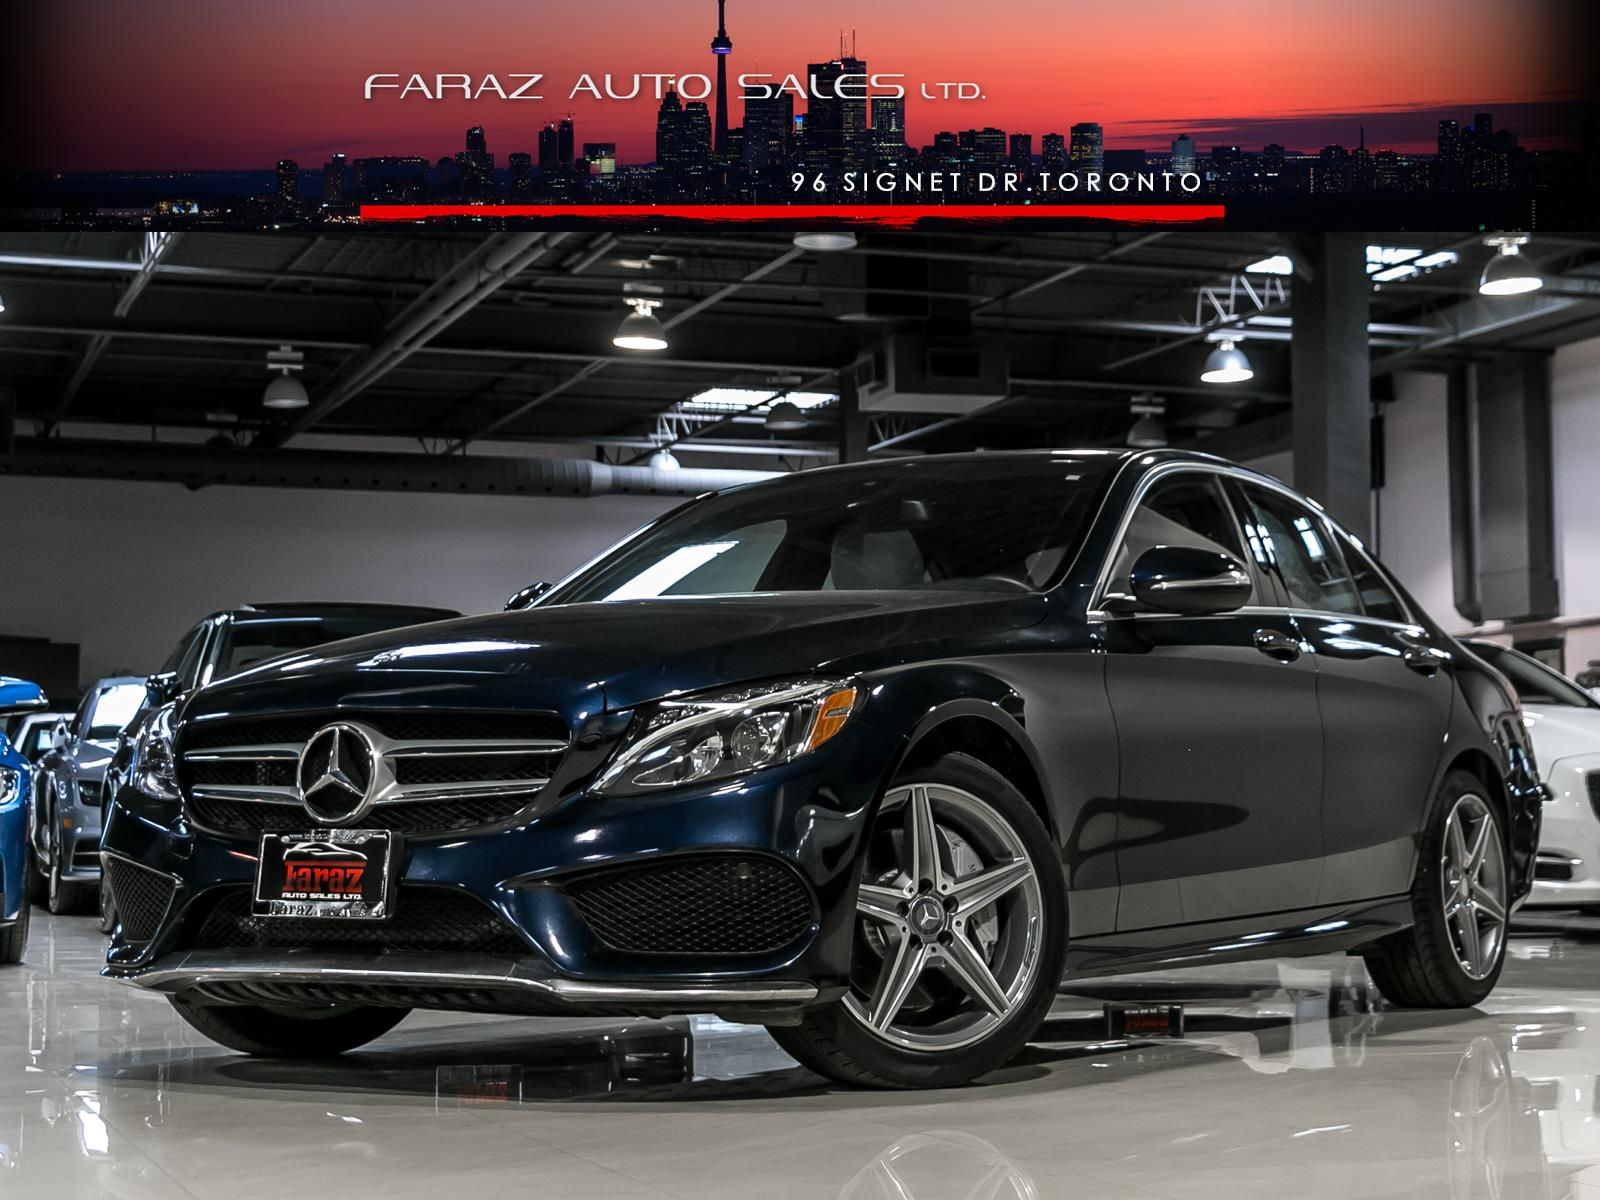 review expert sale of for c amg used benz vehicle mercedes